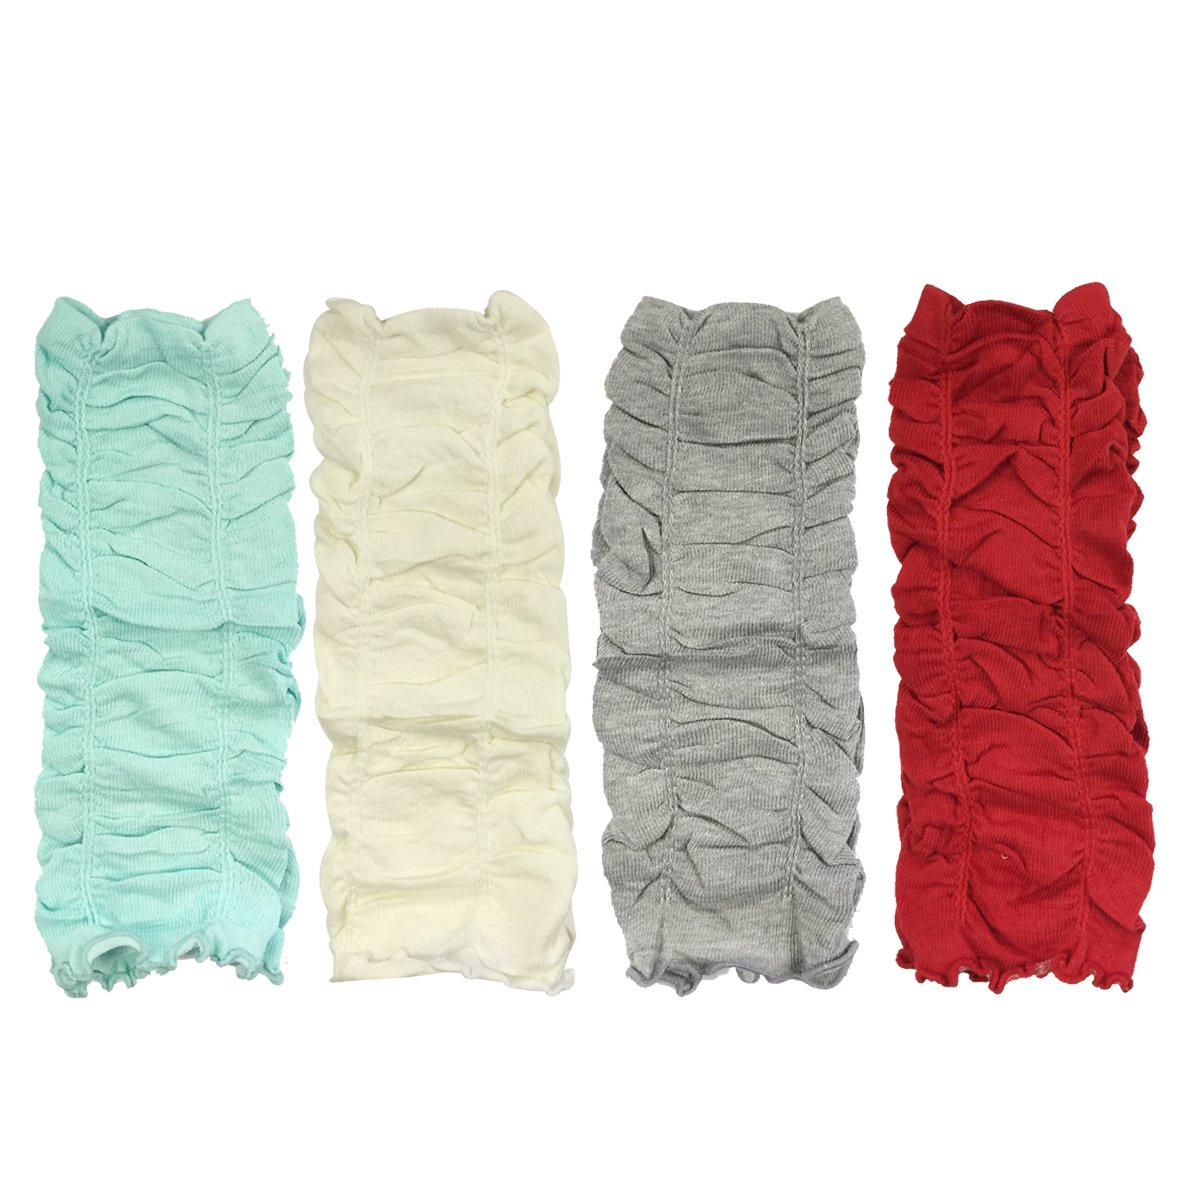 AllyDrew Gathered Ruching Baby Leg Warmers (Set of 4), Baby Blue, White Gray, Red